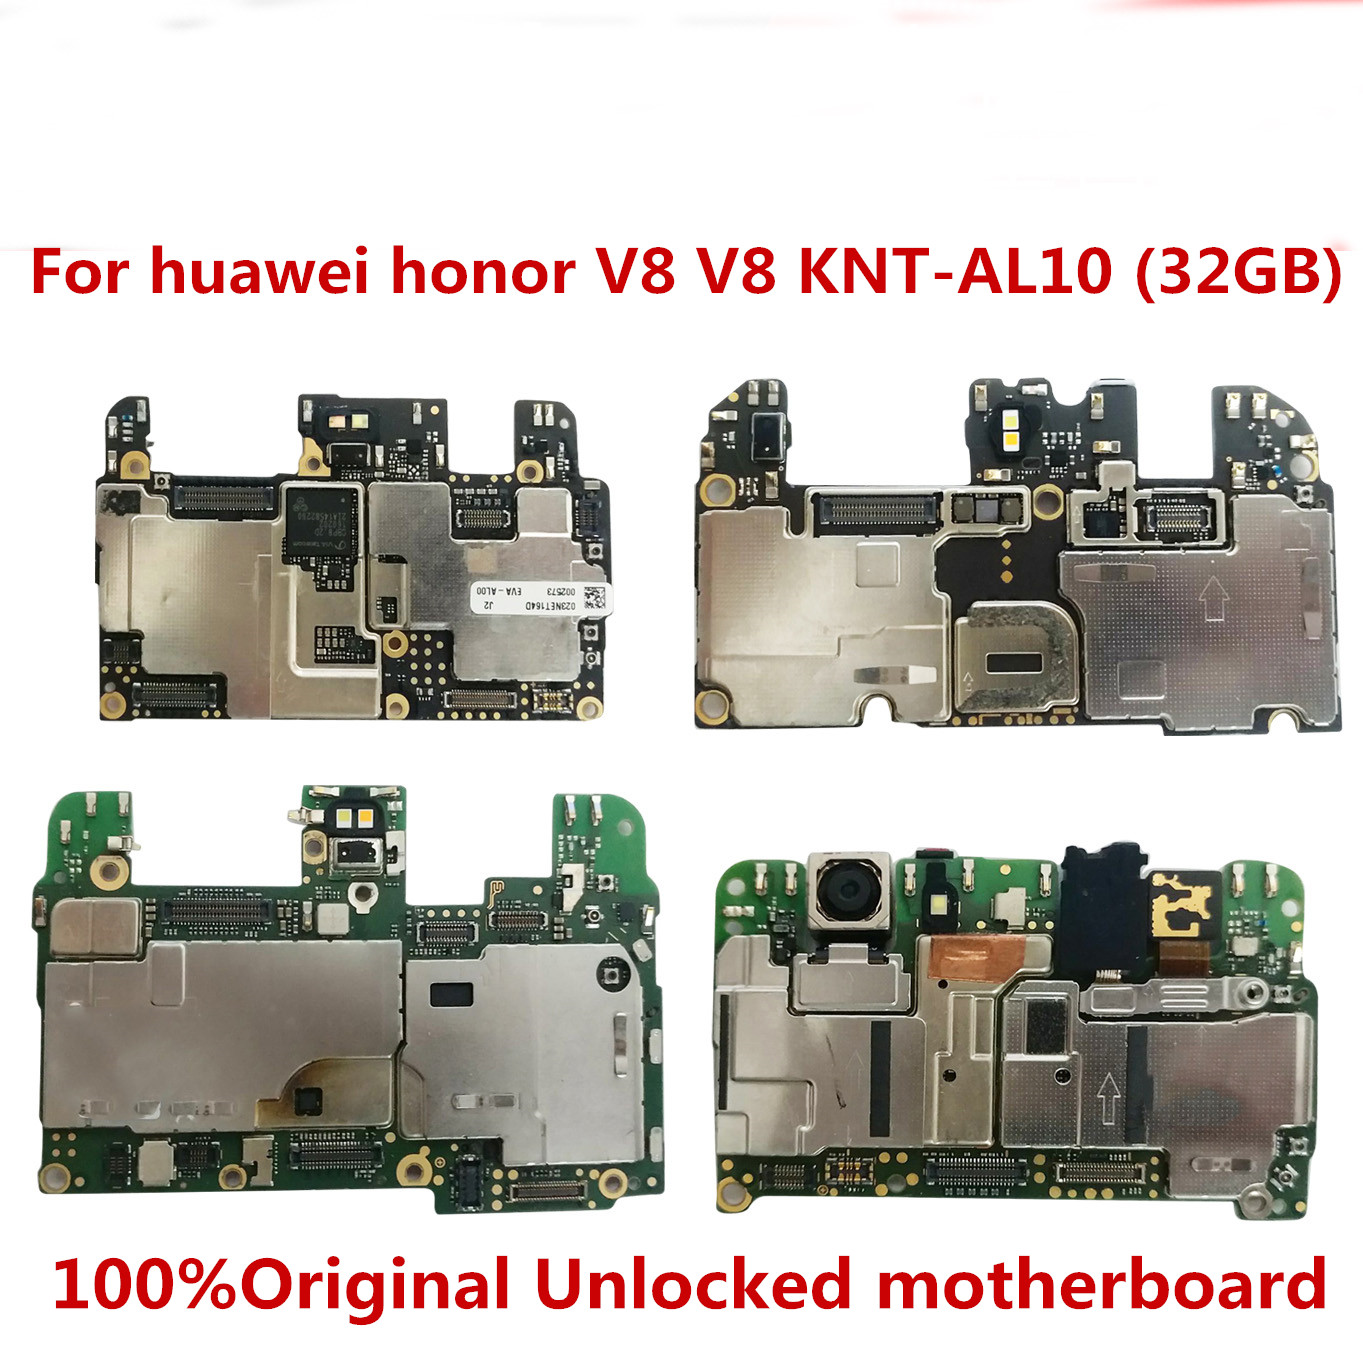 Full Working 100%Original Unlocked for huawei honor V8 KNT-AL10 32GB  motherboard  Logic Mother Circuit Board Plate